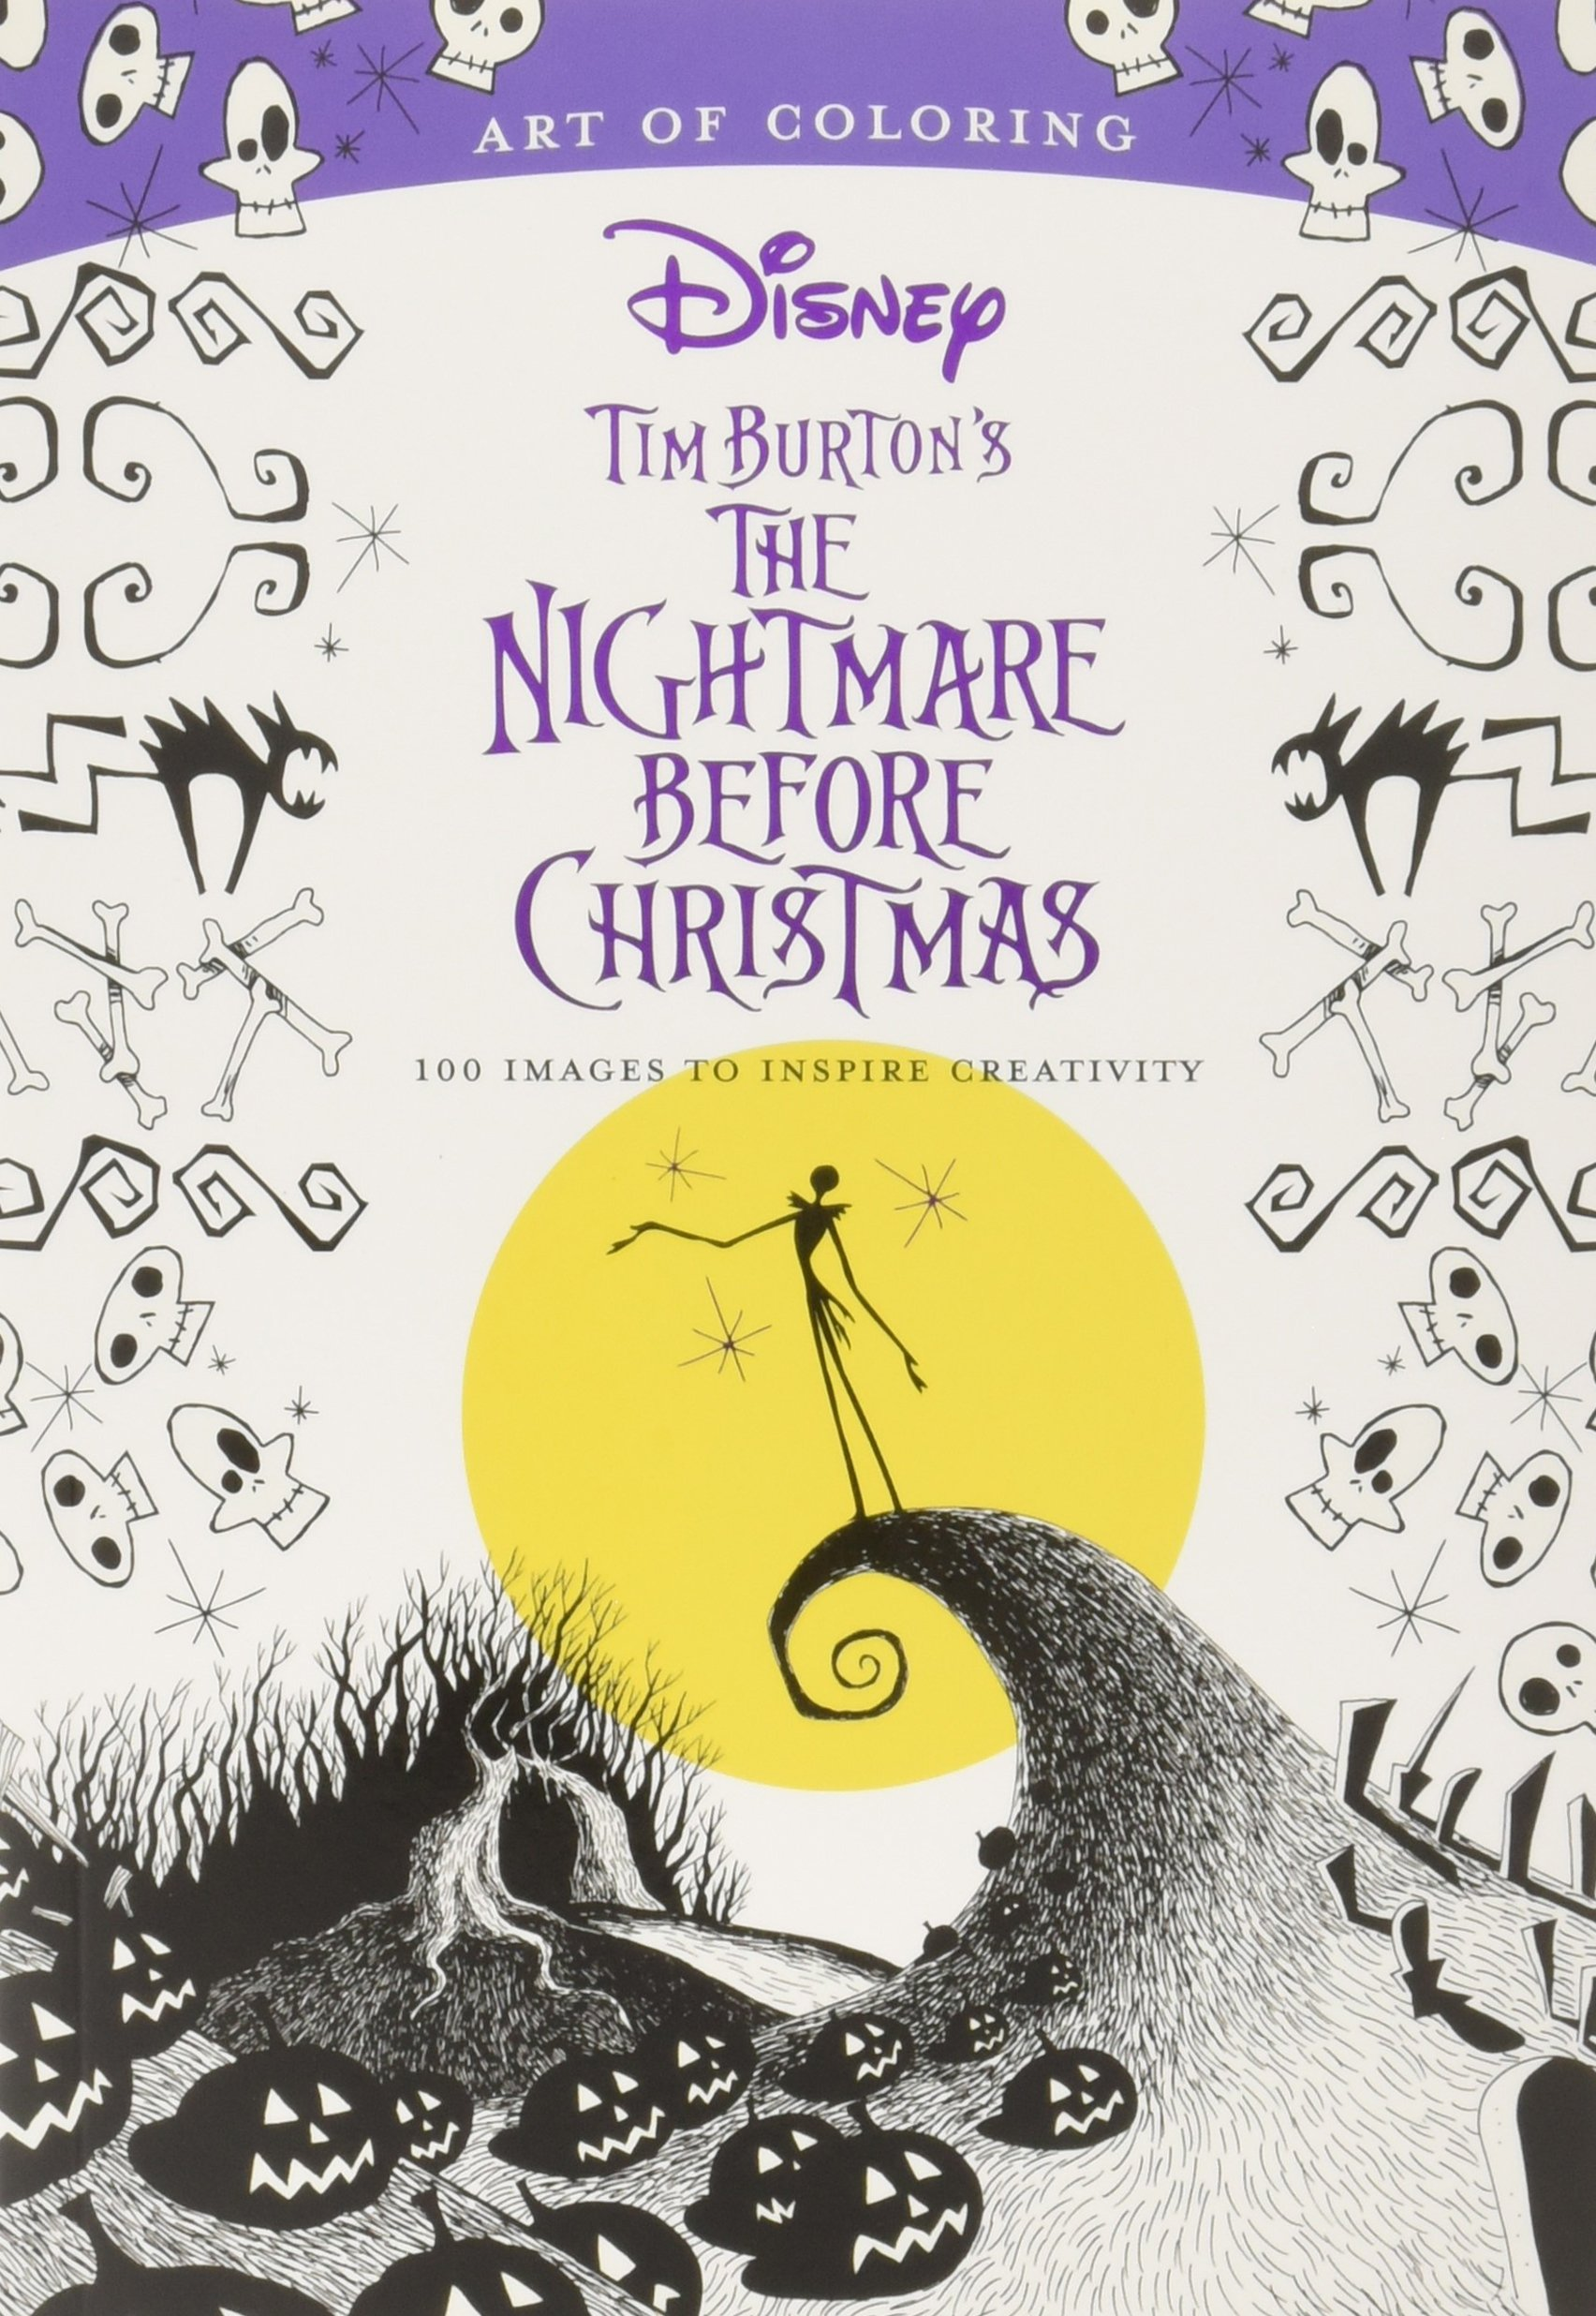 Tim Burtons The Nightmare Before Christmas: 100 Images to Inspire Creativity Art of Colouring: Amazon.es: Disney Book Group: Libros en idiomas extranjeros